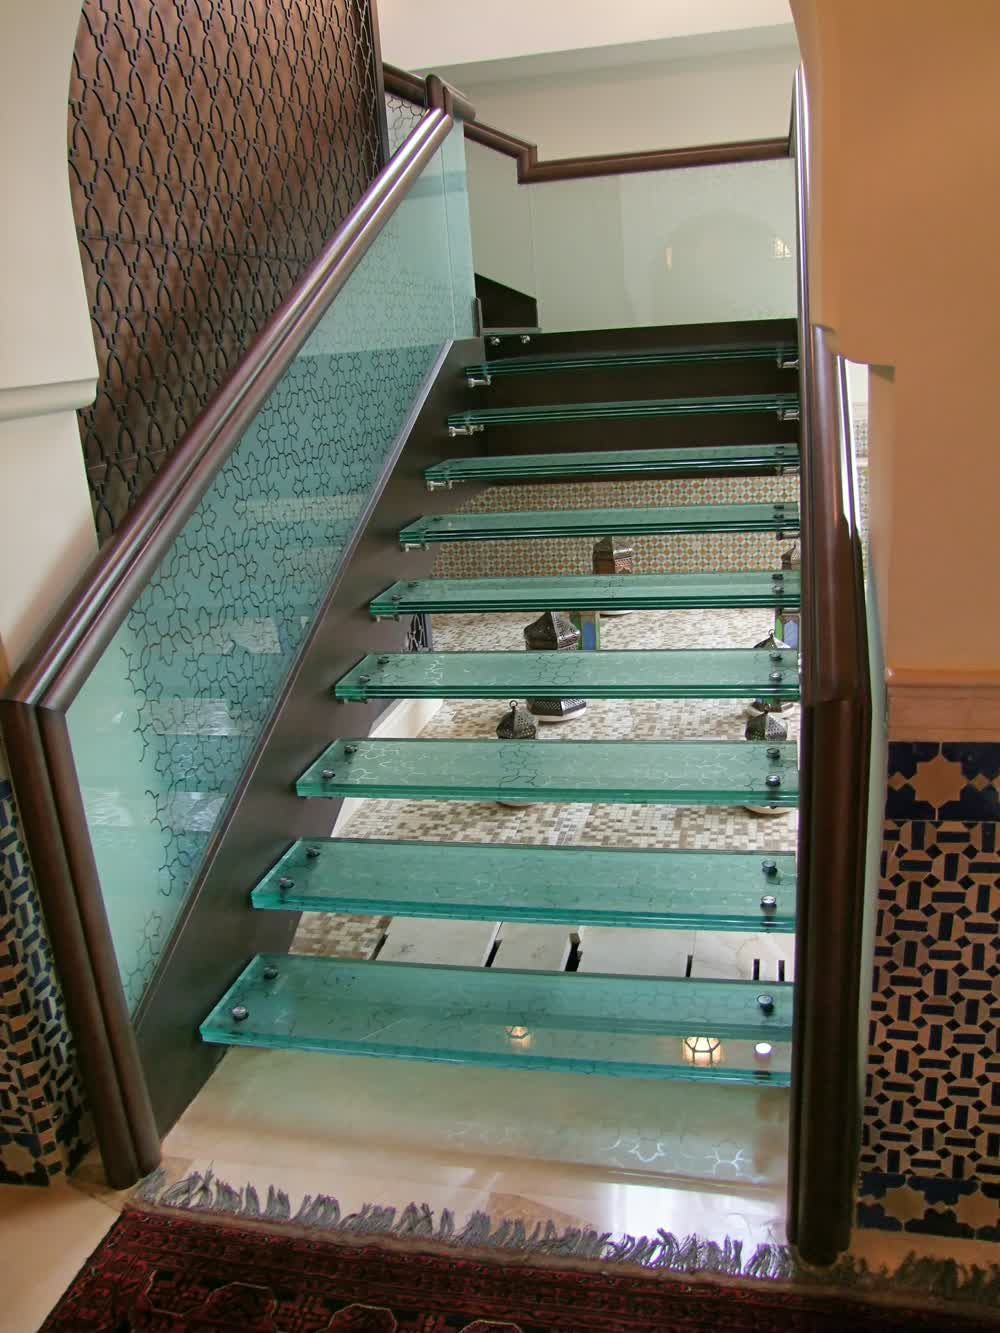 title: Glass Floating Stairs in a Hotel in Abu Dhabi